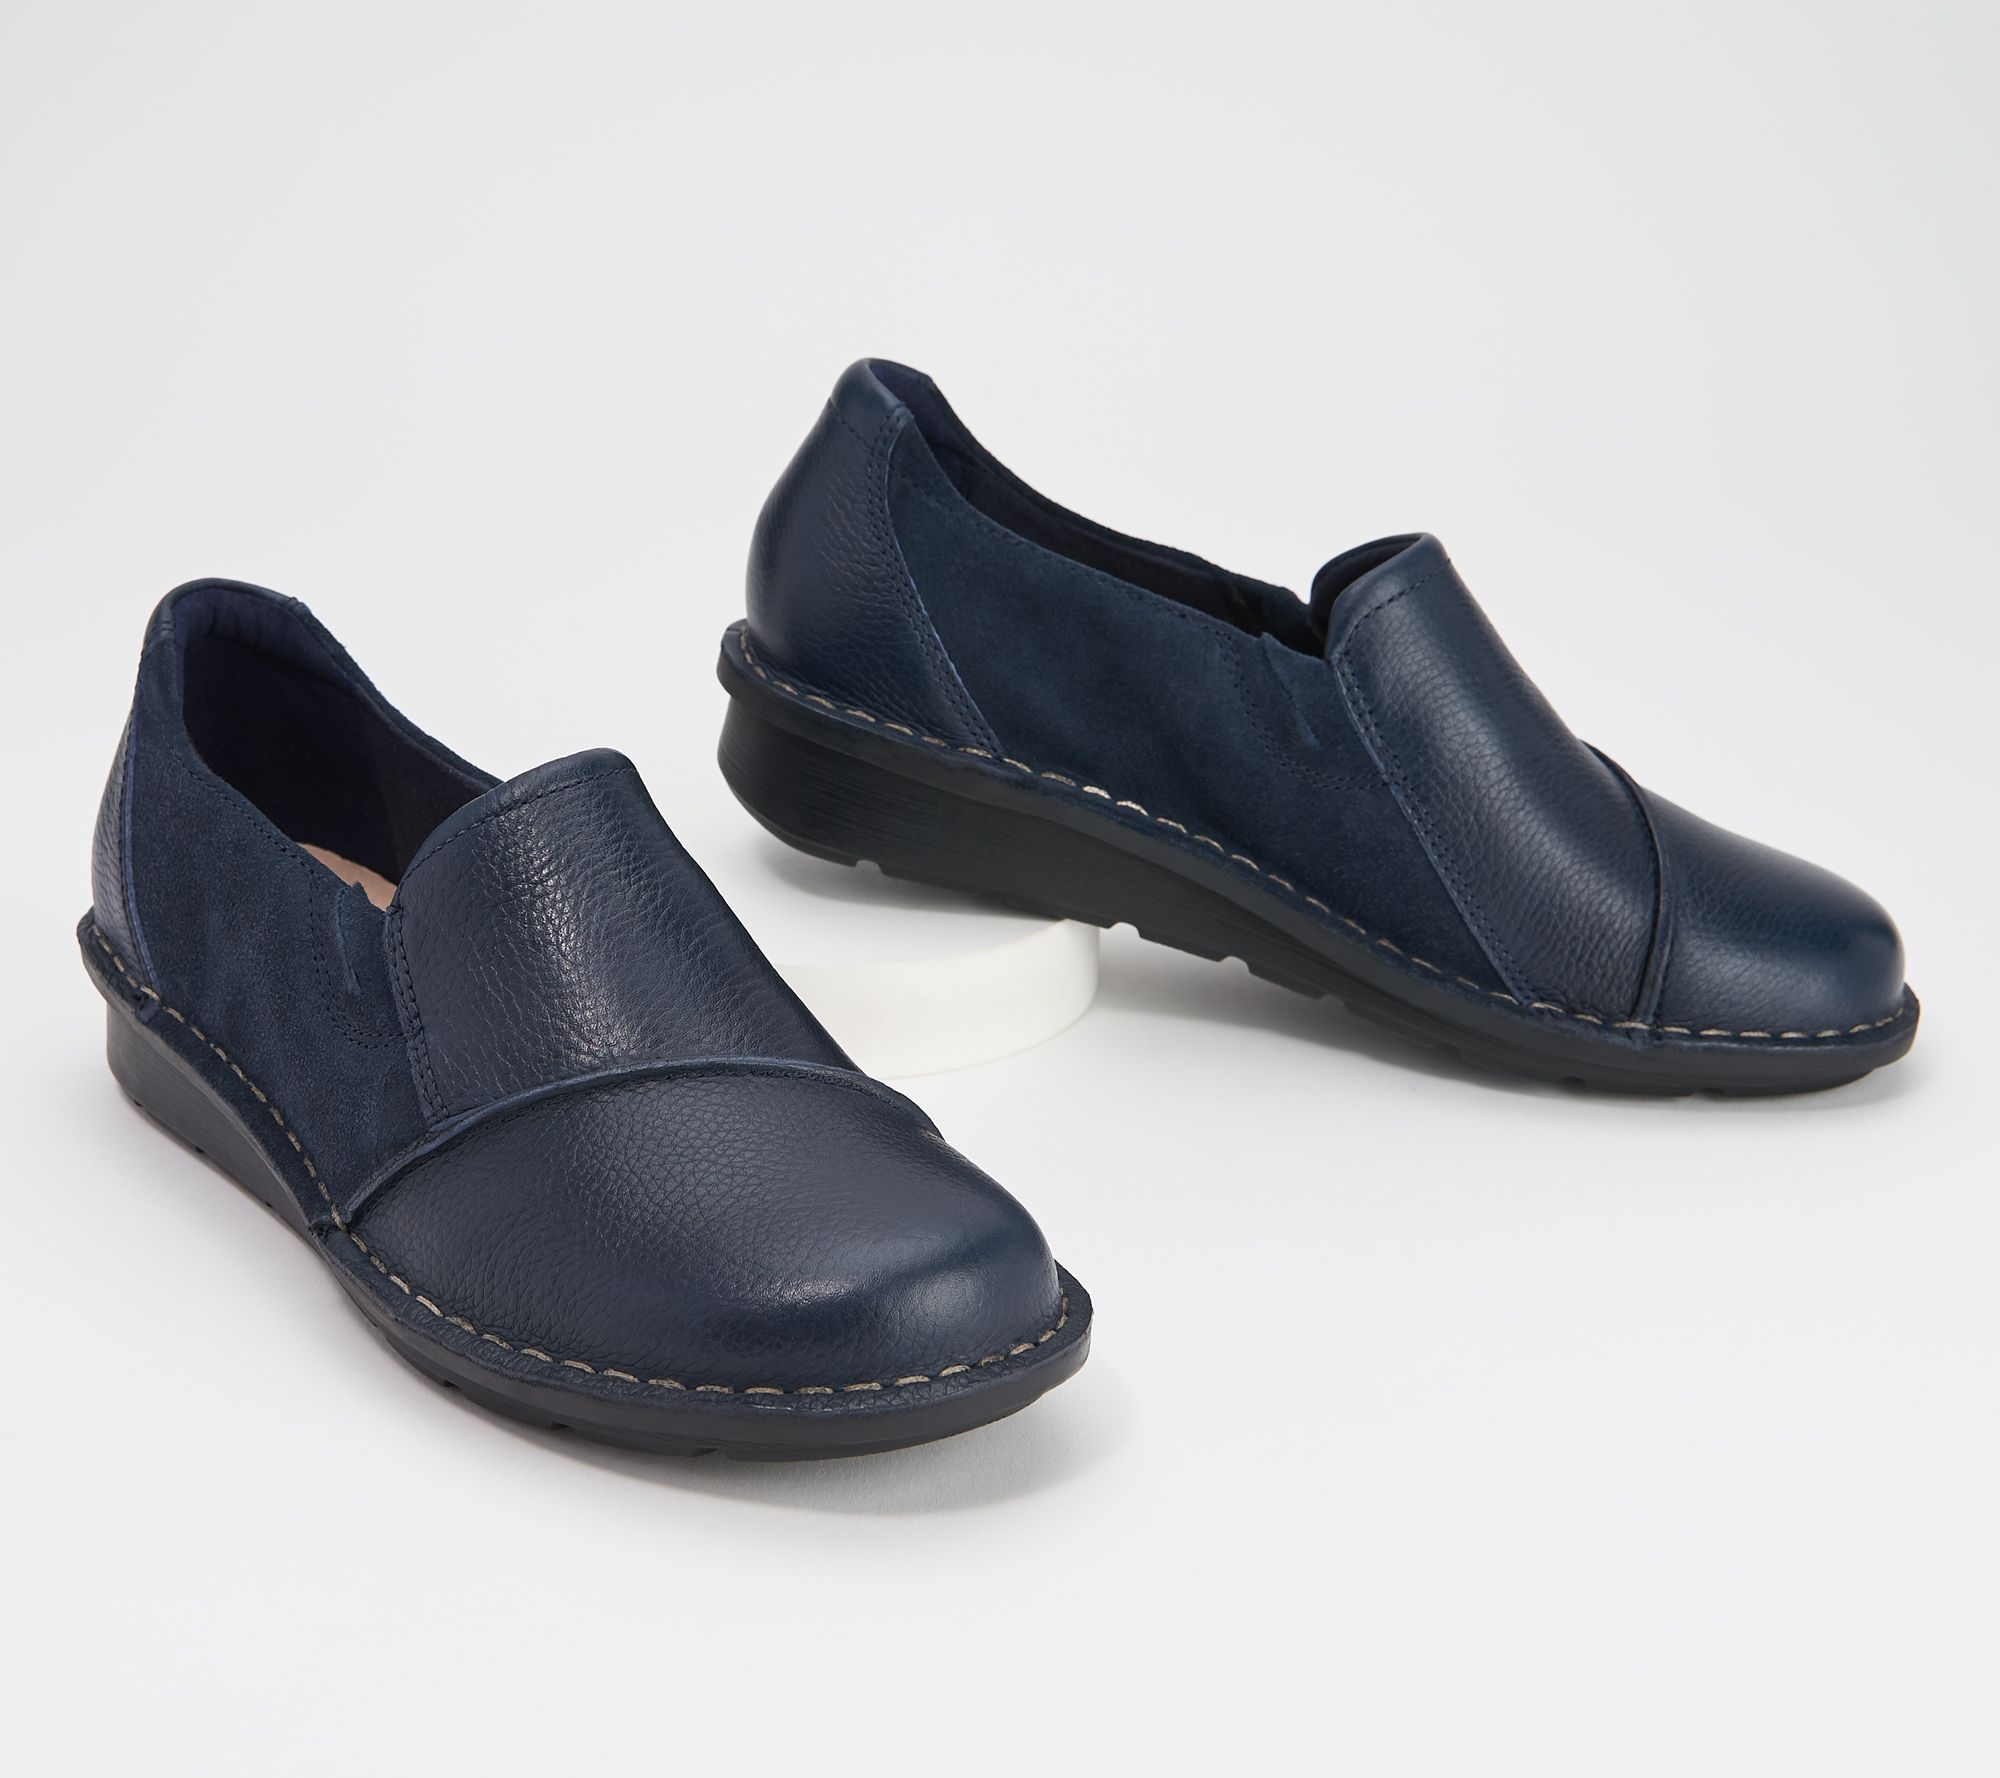 Comfort Plus Michaela Slip On Orthopaedic Soft Leather Casual Wide Fit Shoes